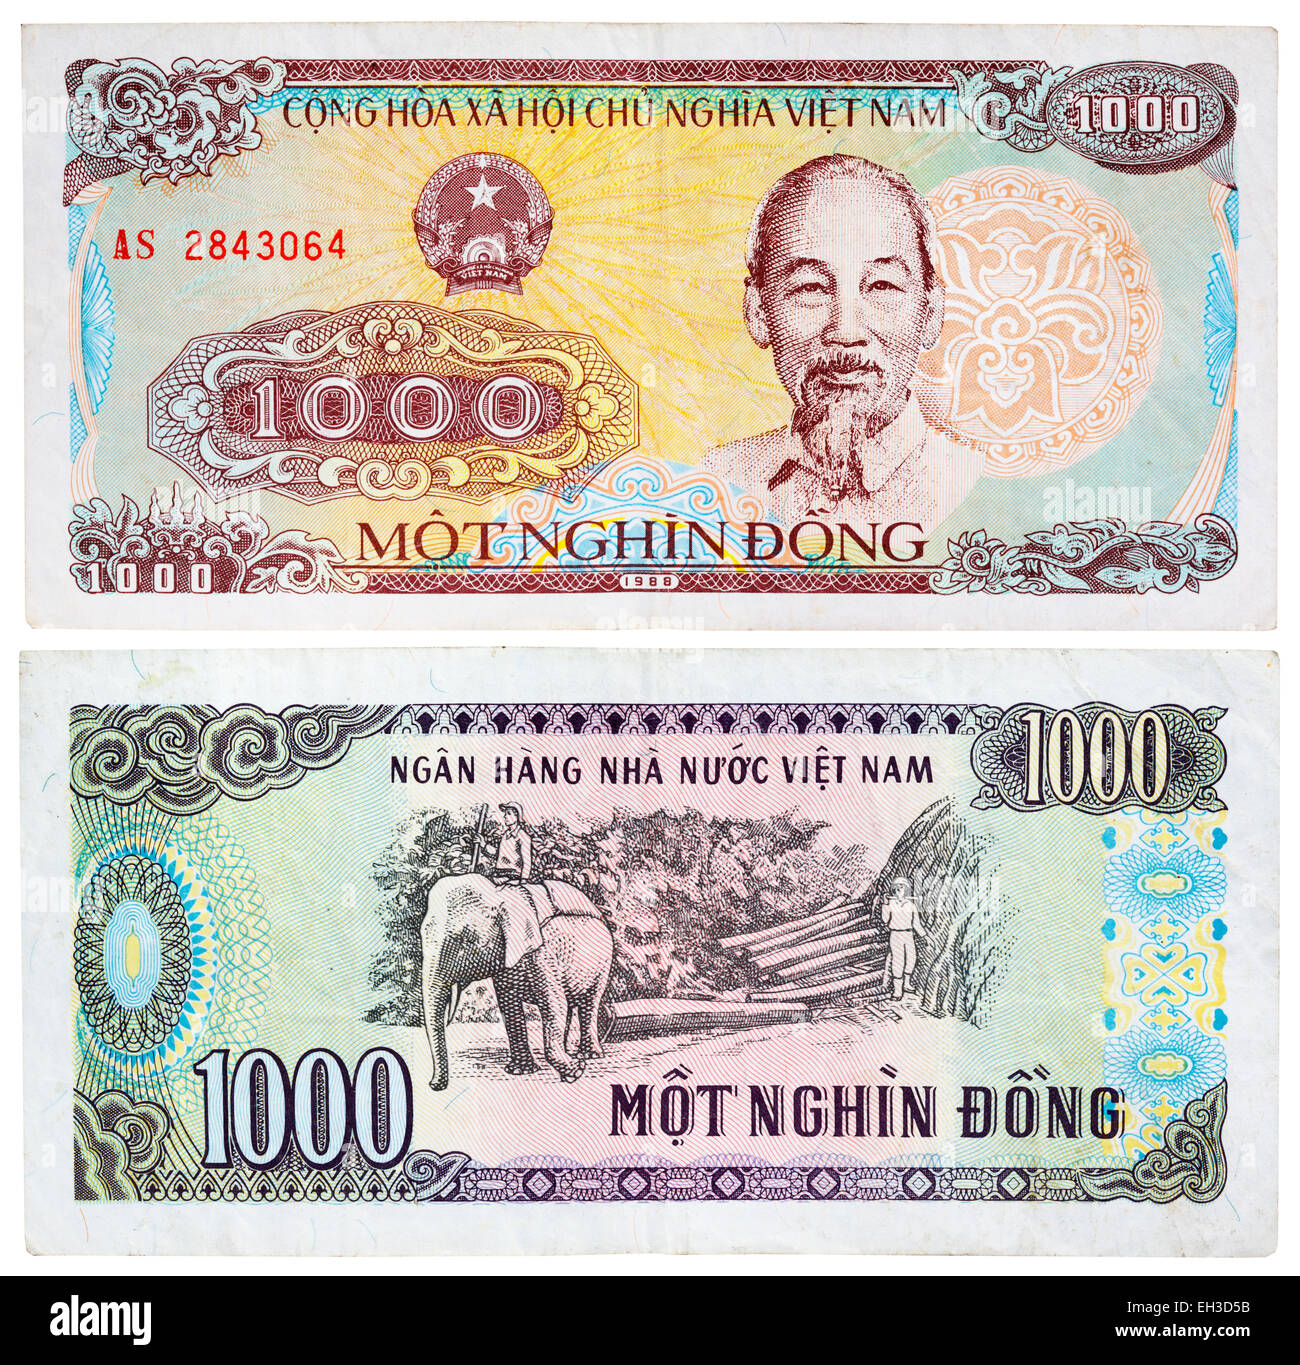 Paper Currency Vietnam High Resolution Stock Photography And Images Alamy